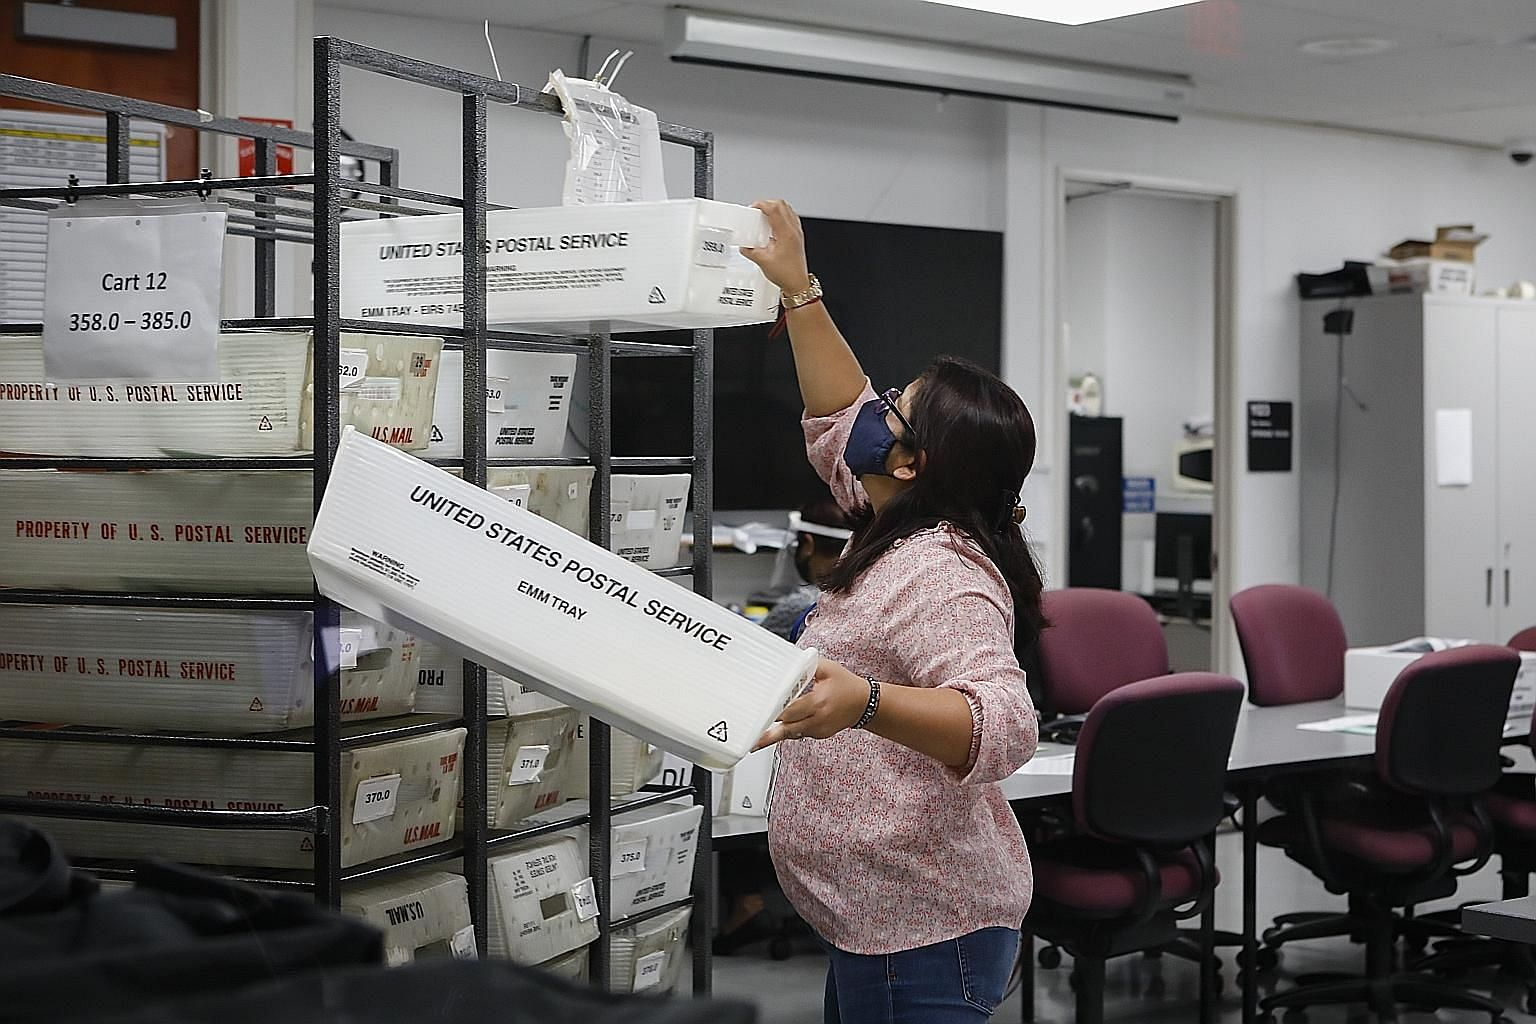 A worker holding US Postal Service bins with mail-in ballots in Florida on Tuesday, amid concerns that the agency's chief is hampering its ability to handle voting by mail. PHOTO: BLOOMBERG